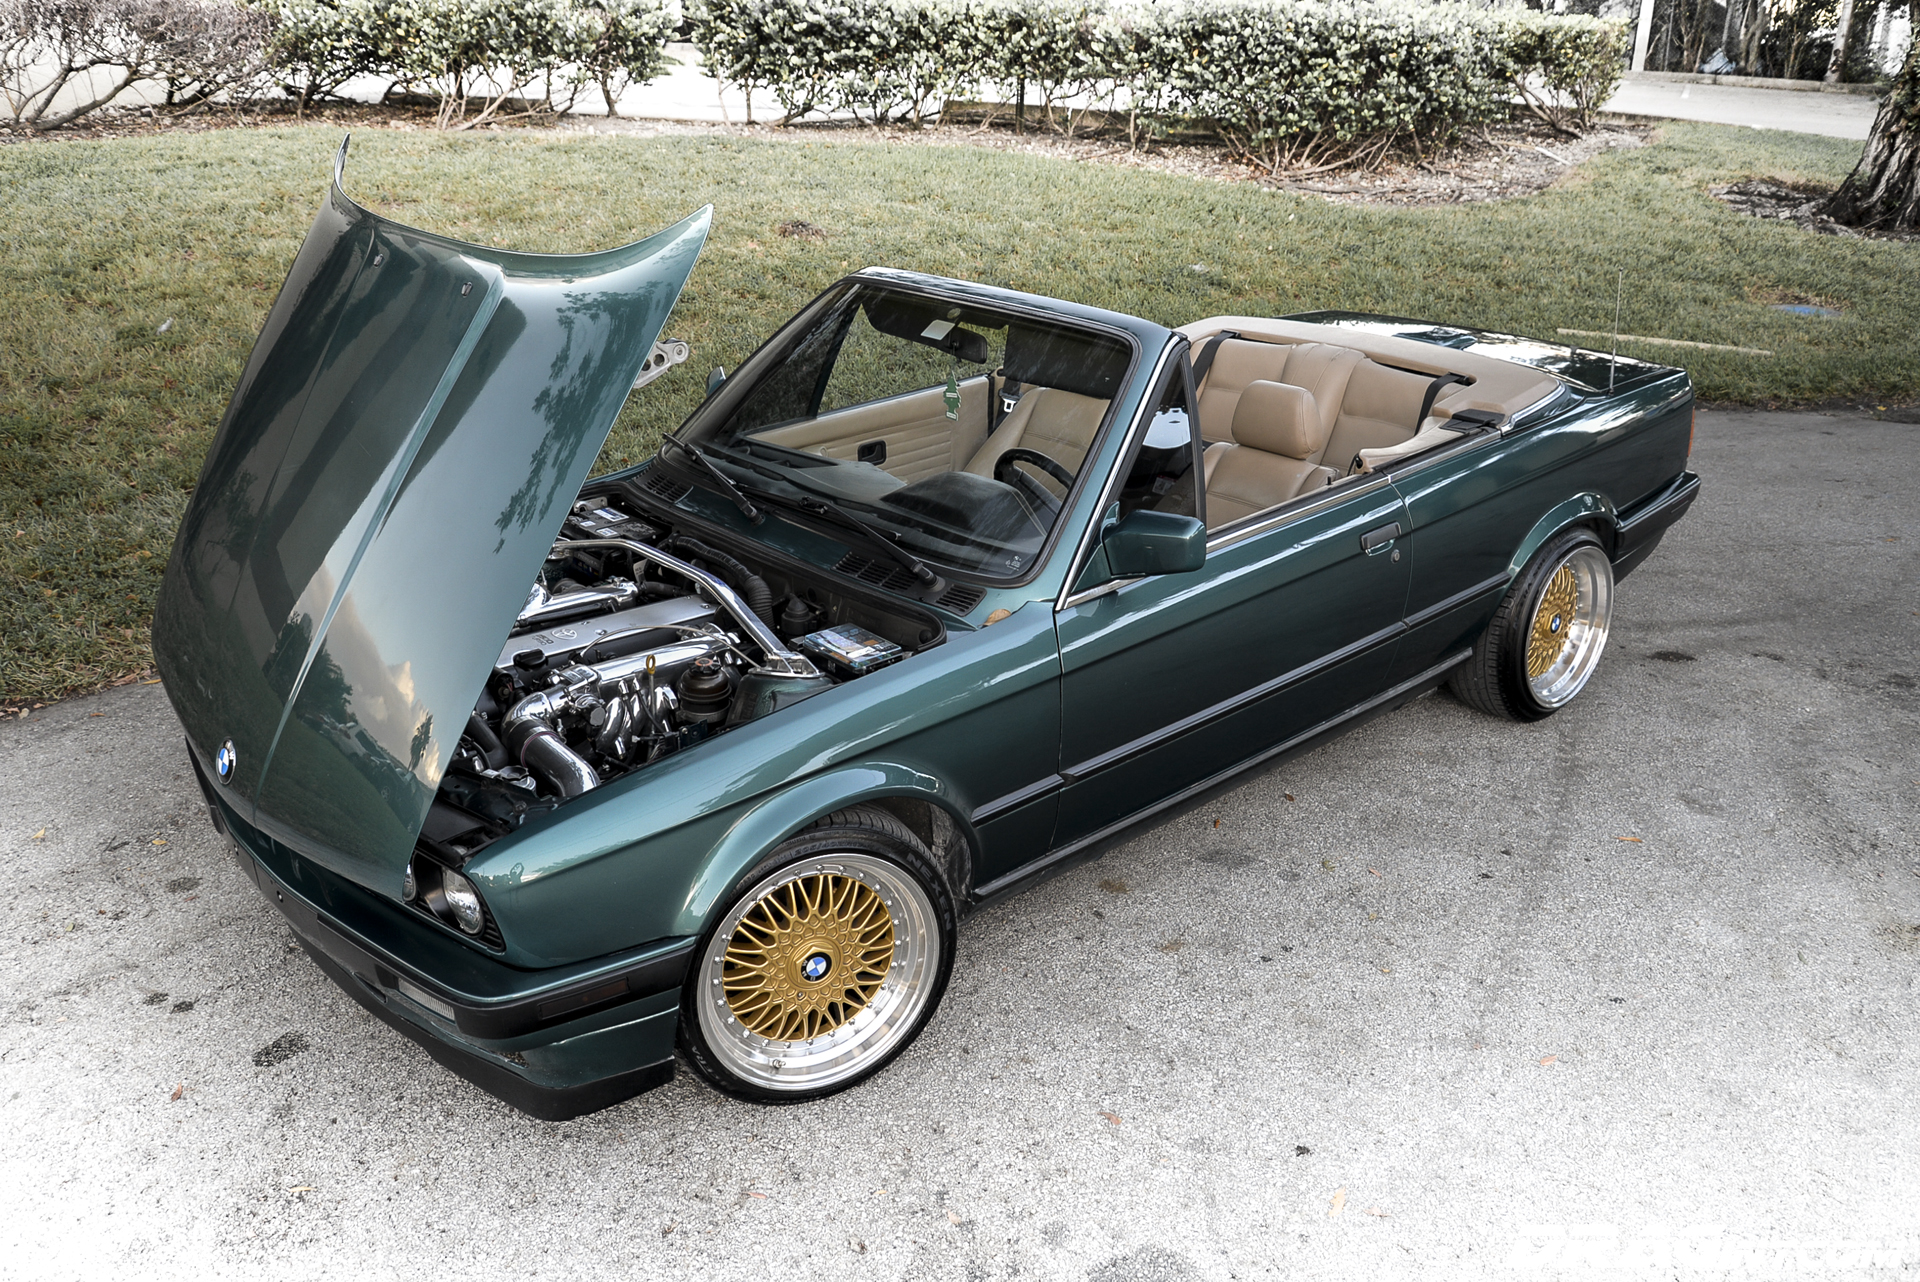 2015 Bmw 3 Series >> Custom Build : BMW 3 Series Vert E30 gets 1JZGTE VVTI Power! | DRAG International